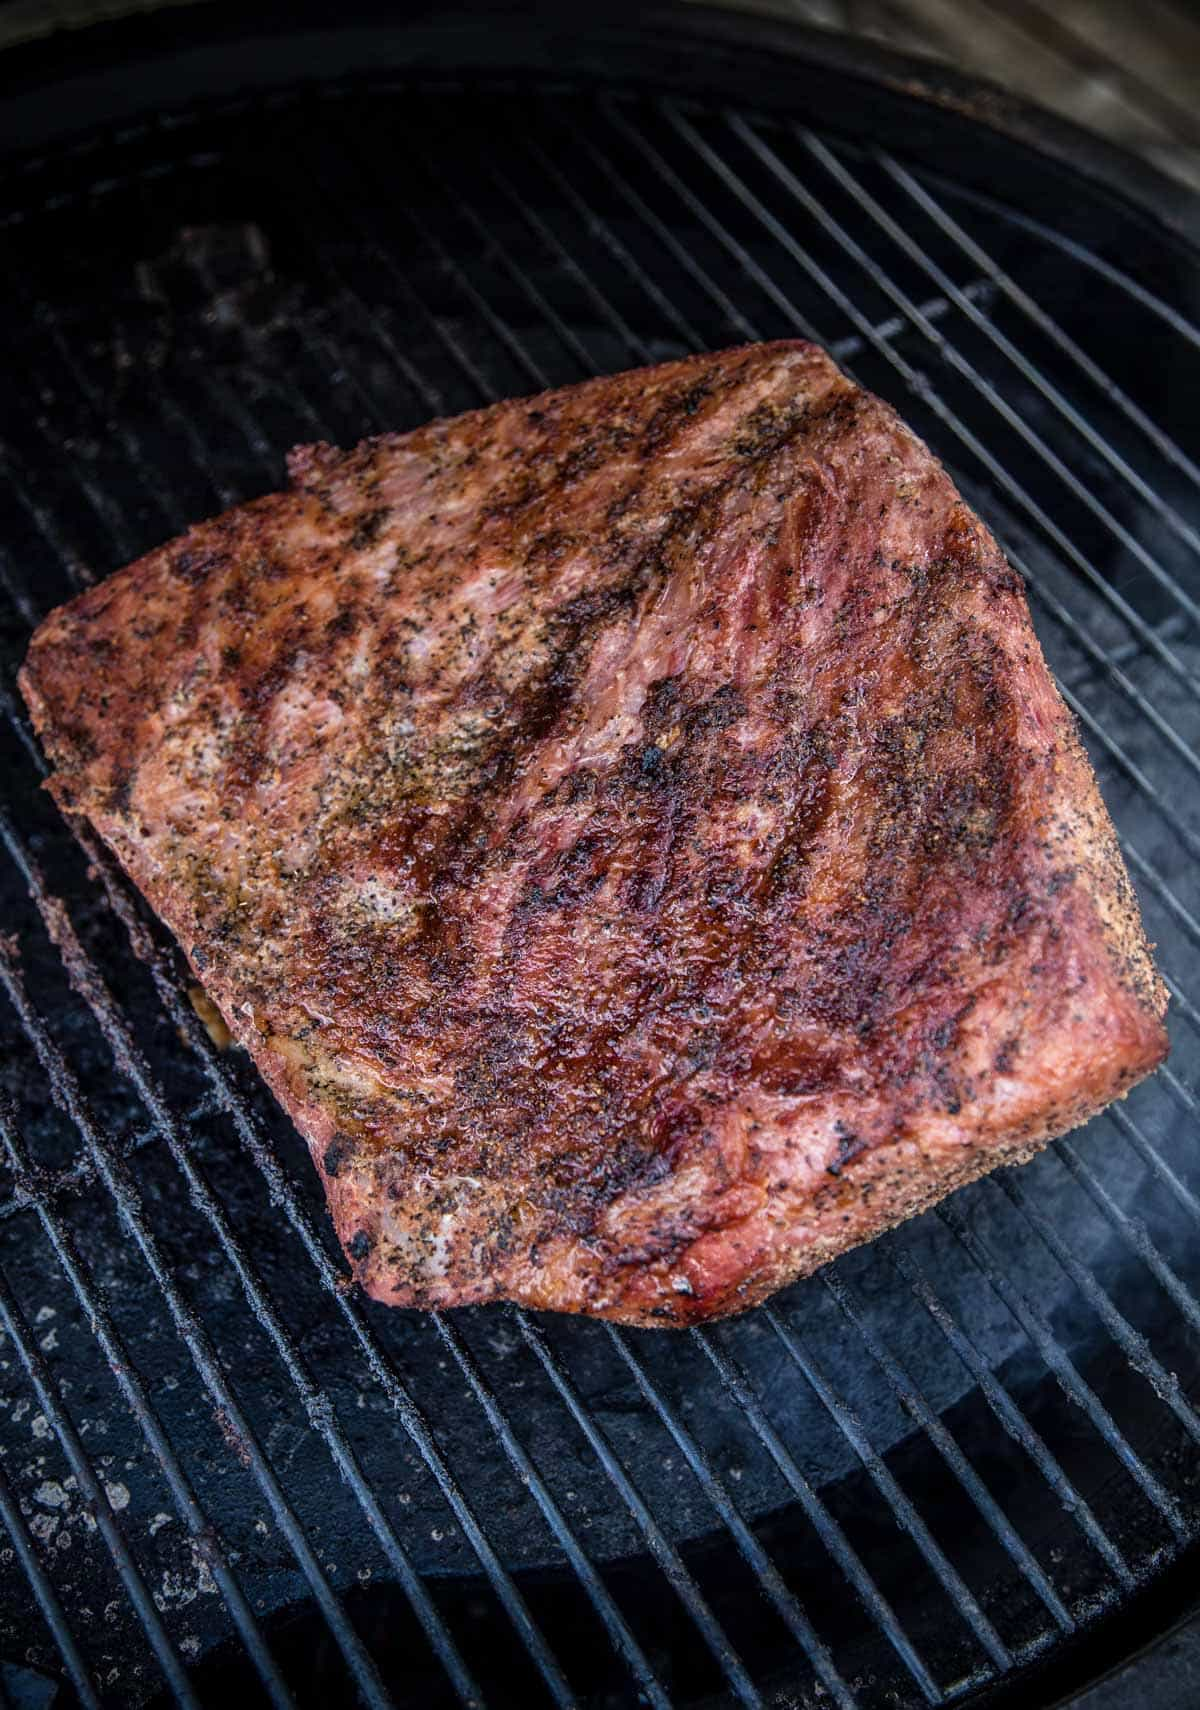 Smoked Corned Beef, cooking a brisket or beef round on the smoker